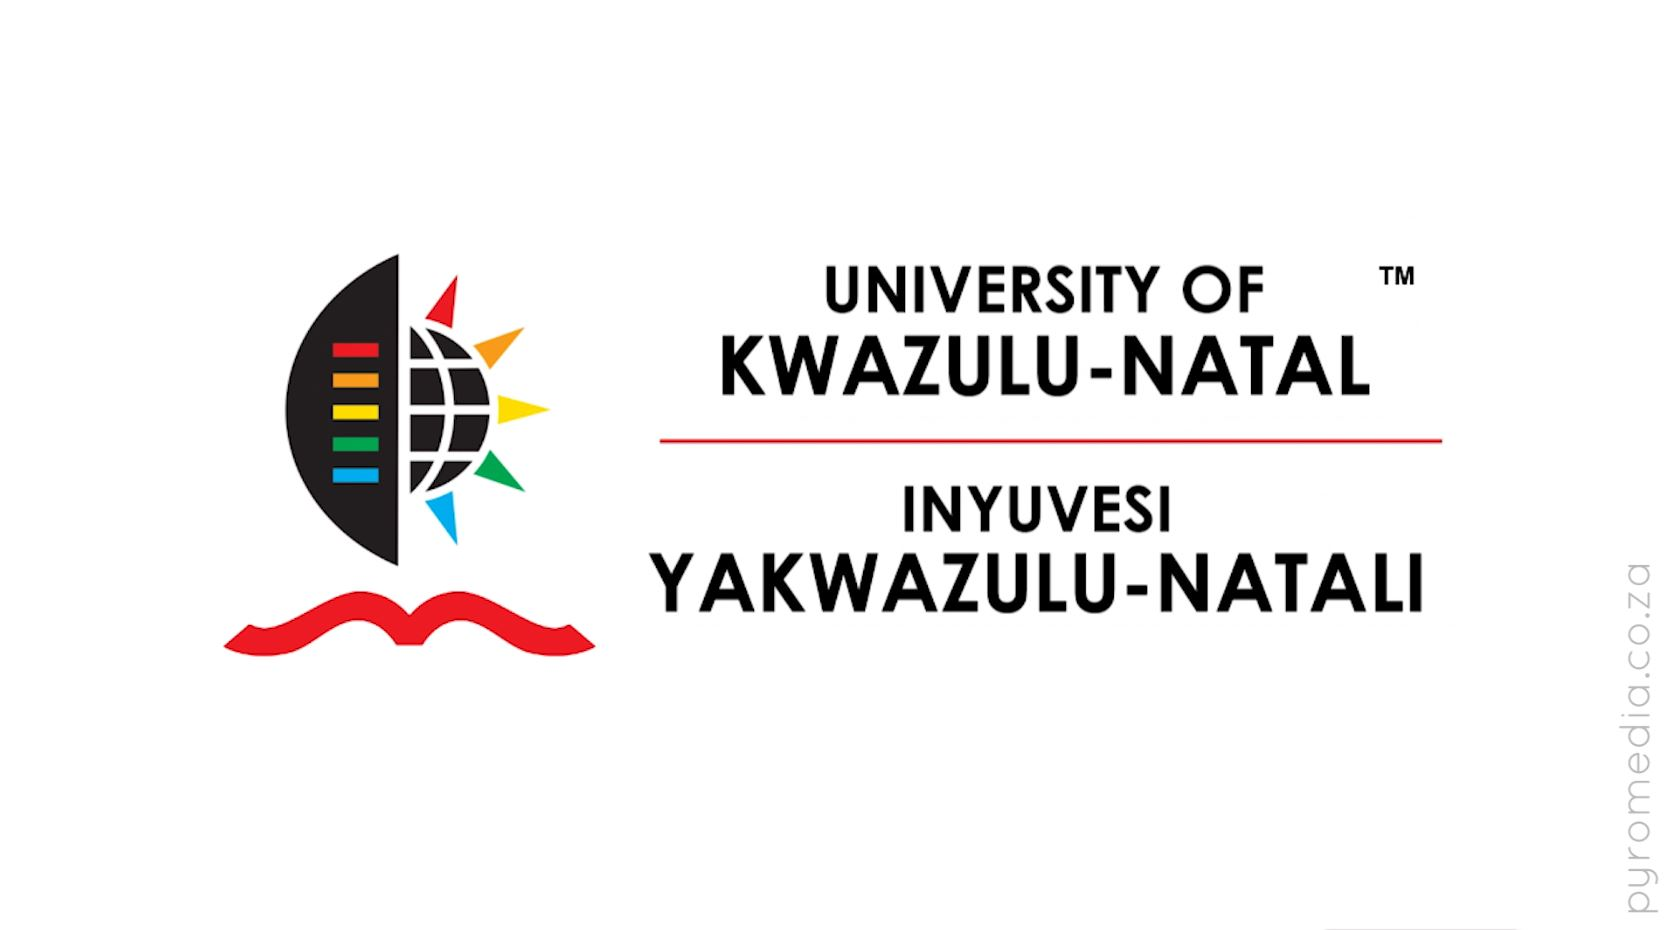 University of KwaZulu-Natal Marketing Video Reel